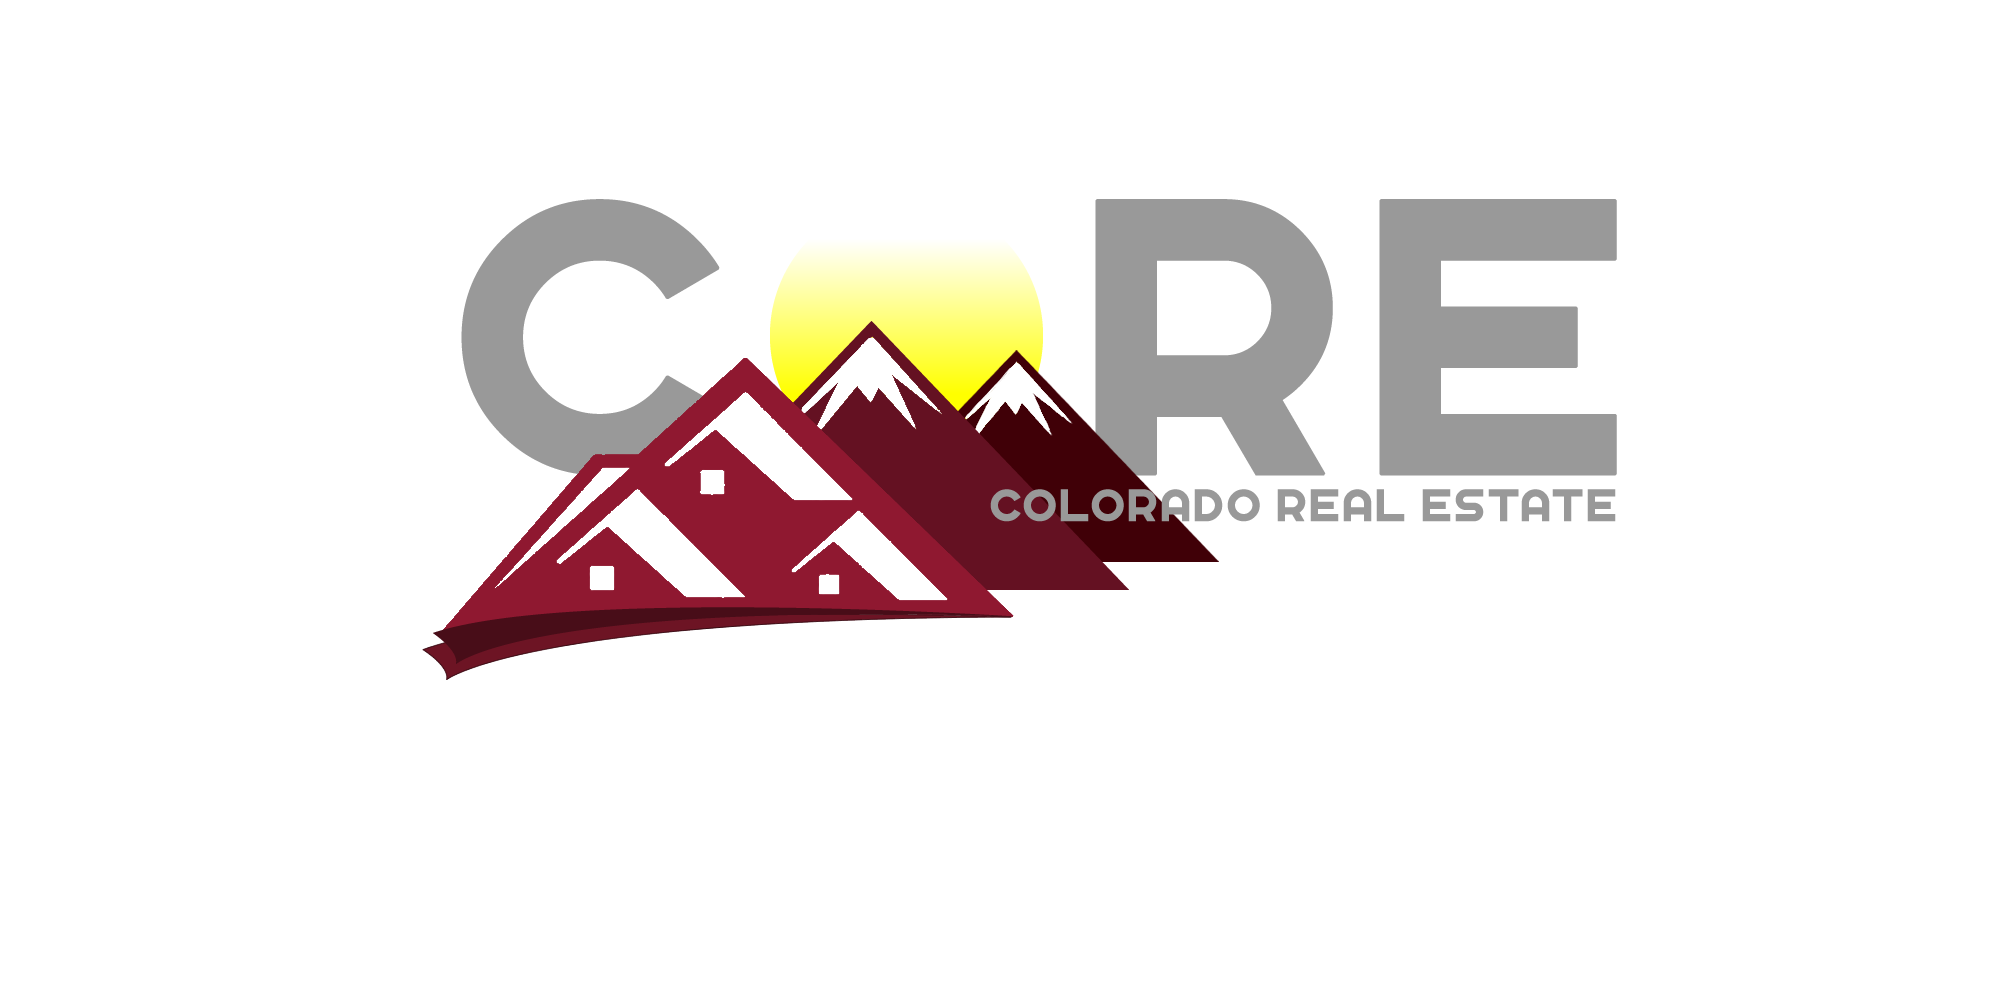 Colorado Real Estate Sales and Services